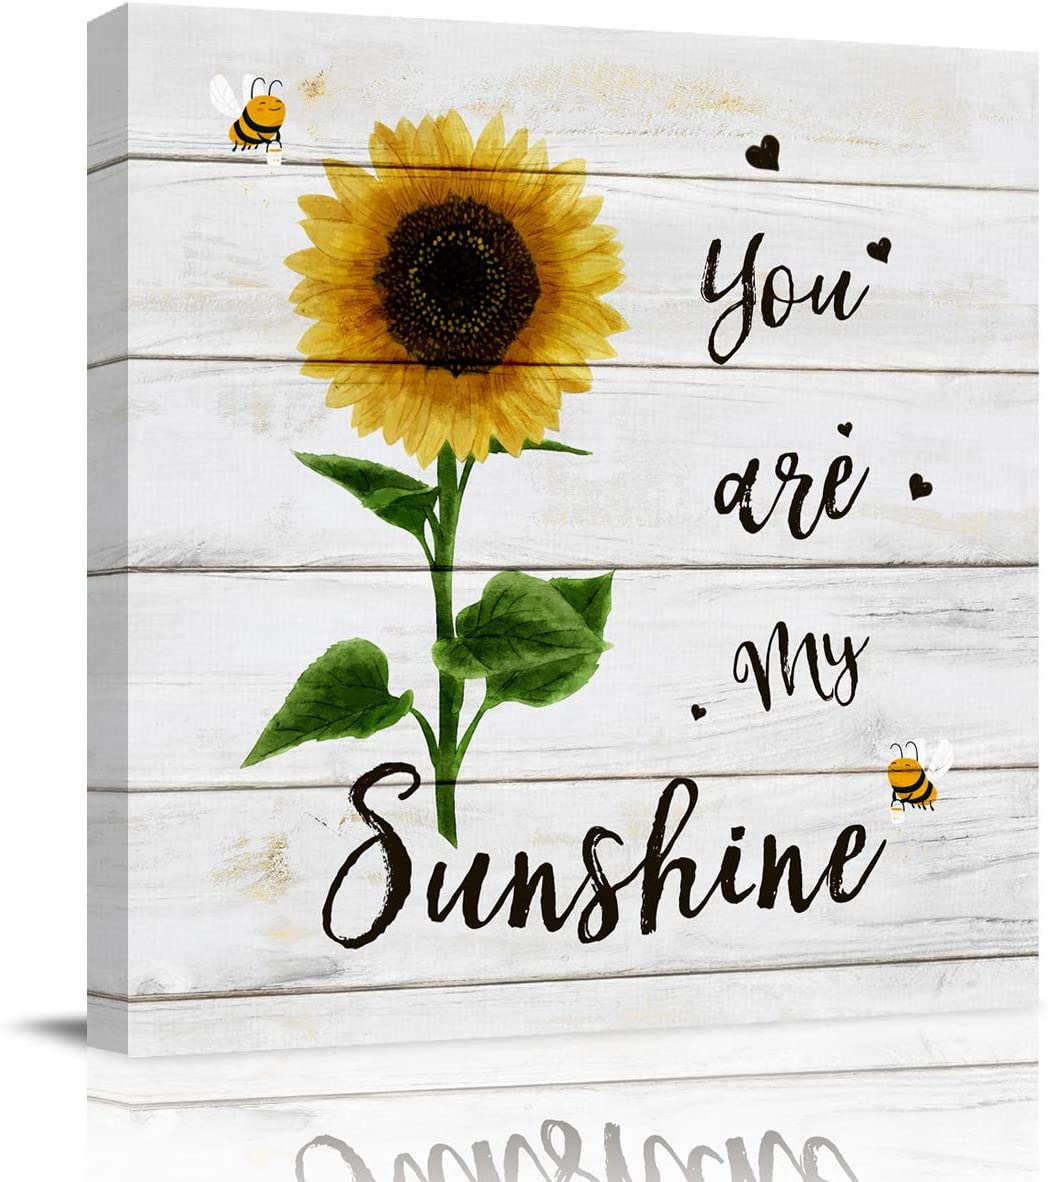 applebless Oil Painting on Canvas Sunflower You are My Sunshine Wall Art Home Decor Bee Heart Wooden Plank Modern Pictures Painting for Living Room, Ready to Hang - 8x8 inches